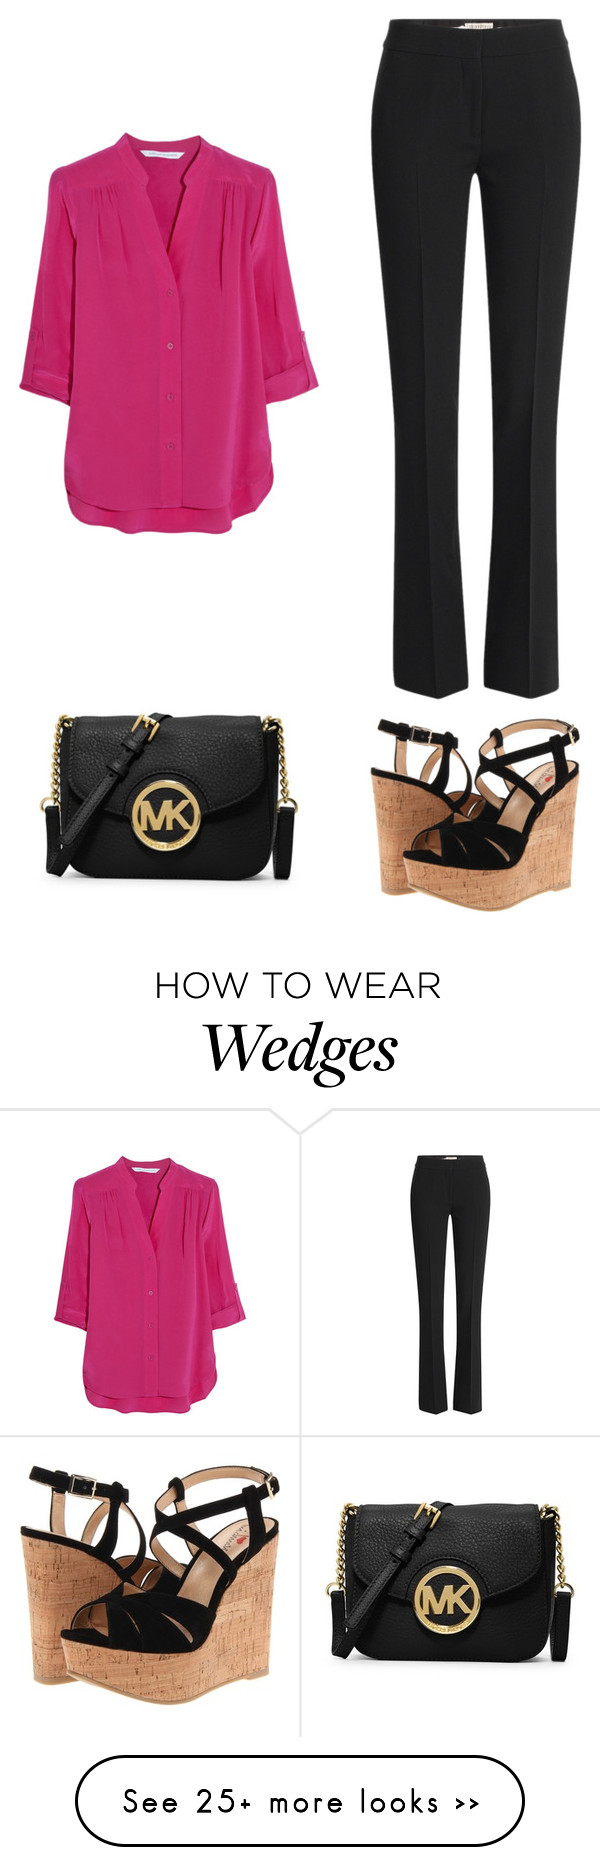 """Look#6_VD_wk1"" by glamupparties on Polyvore featuring Diane Von Furstenberg, MICHAEL Michael Kors, Luichiny and Emilio Pucci"